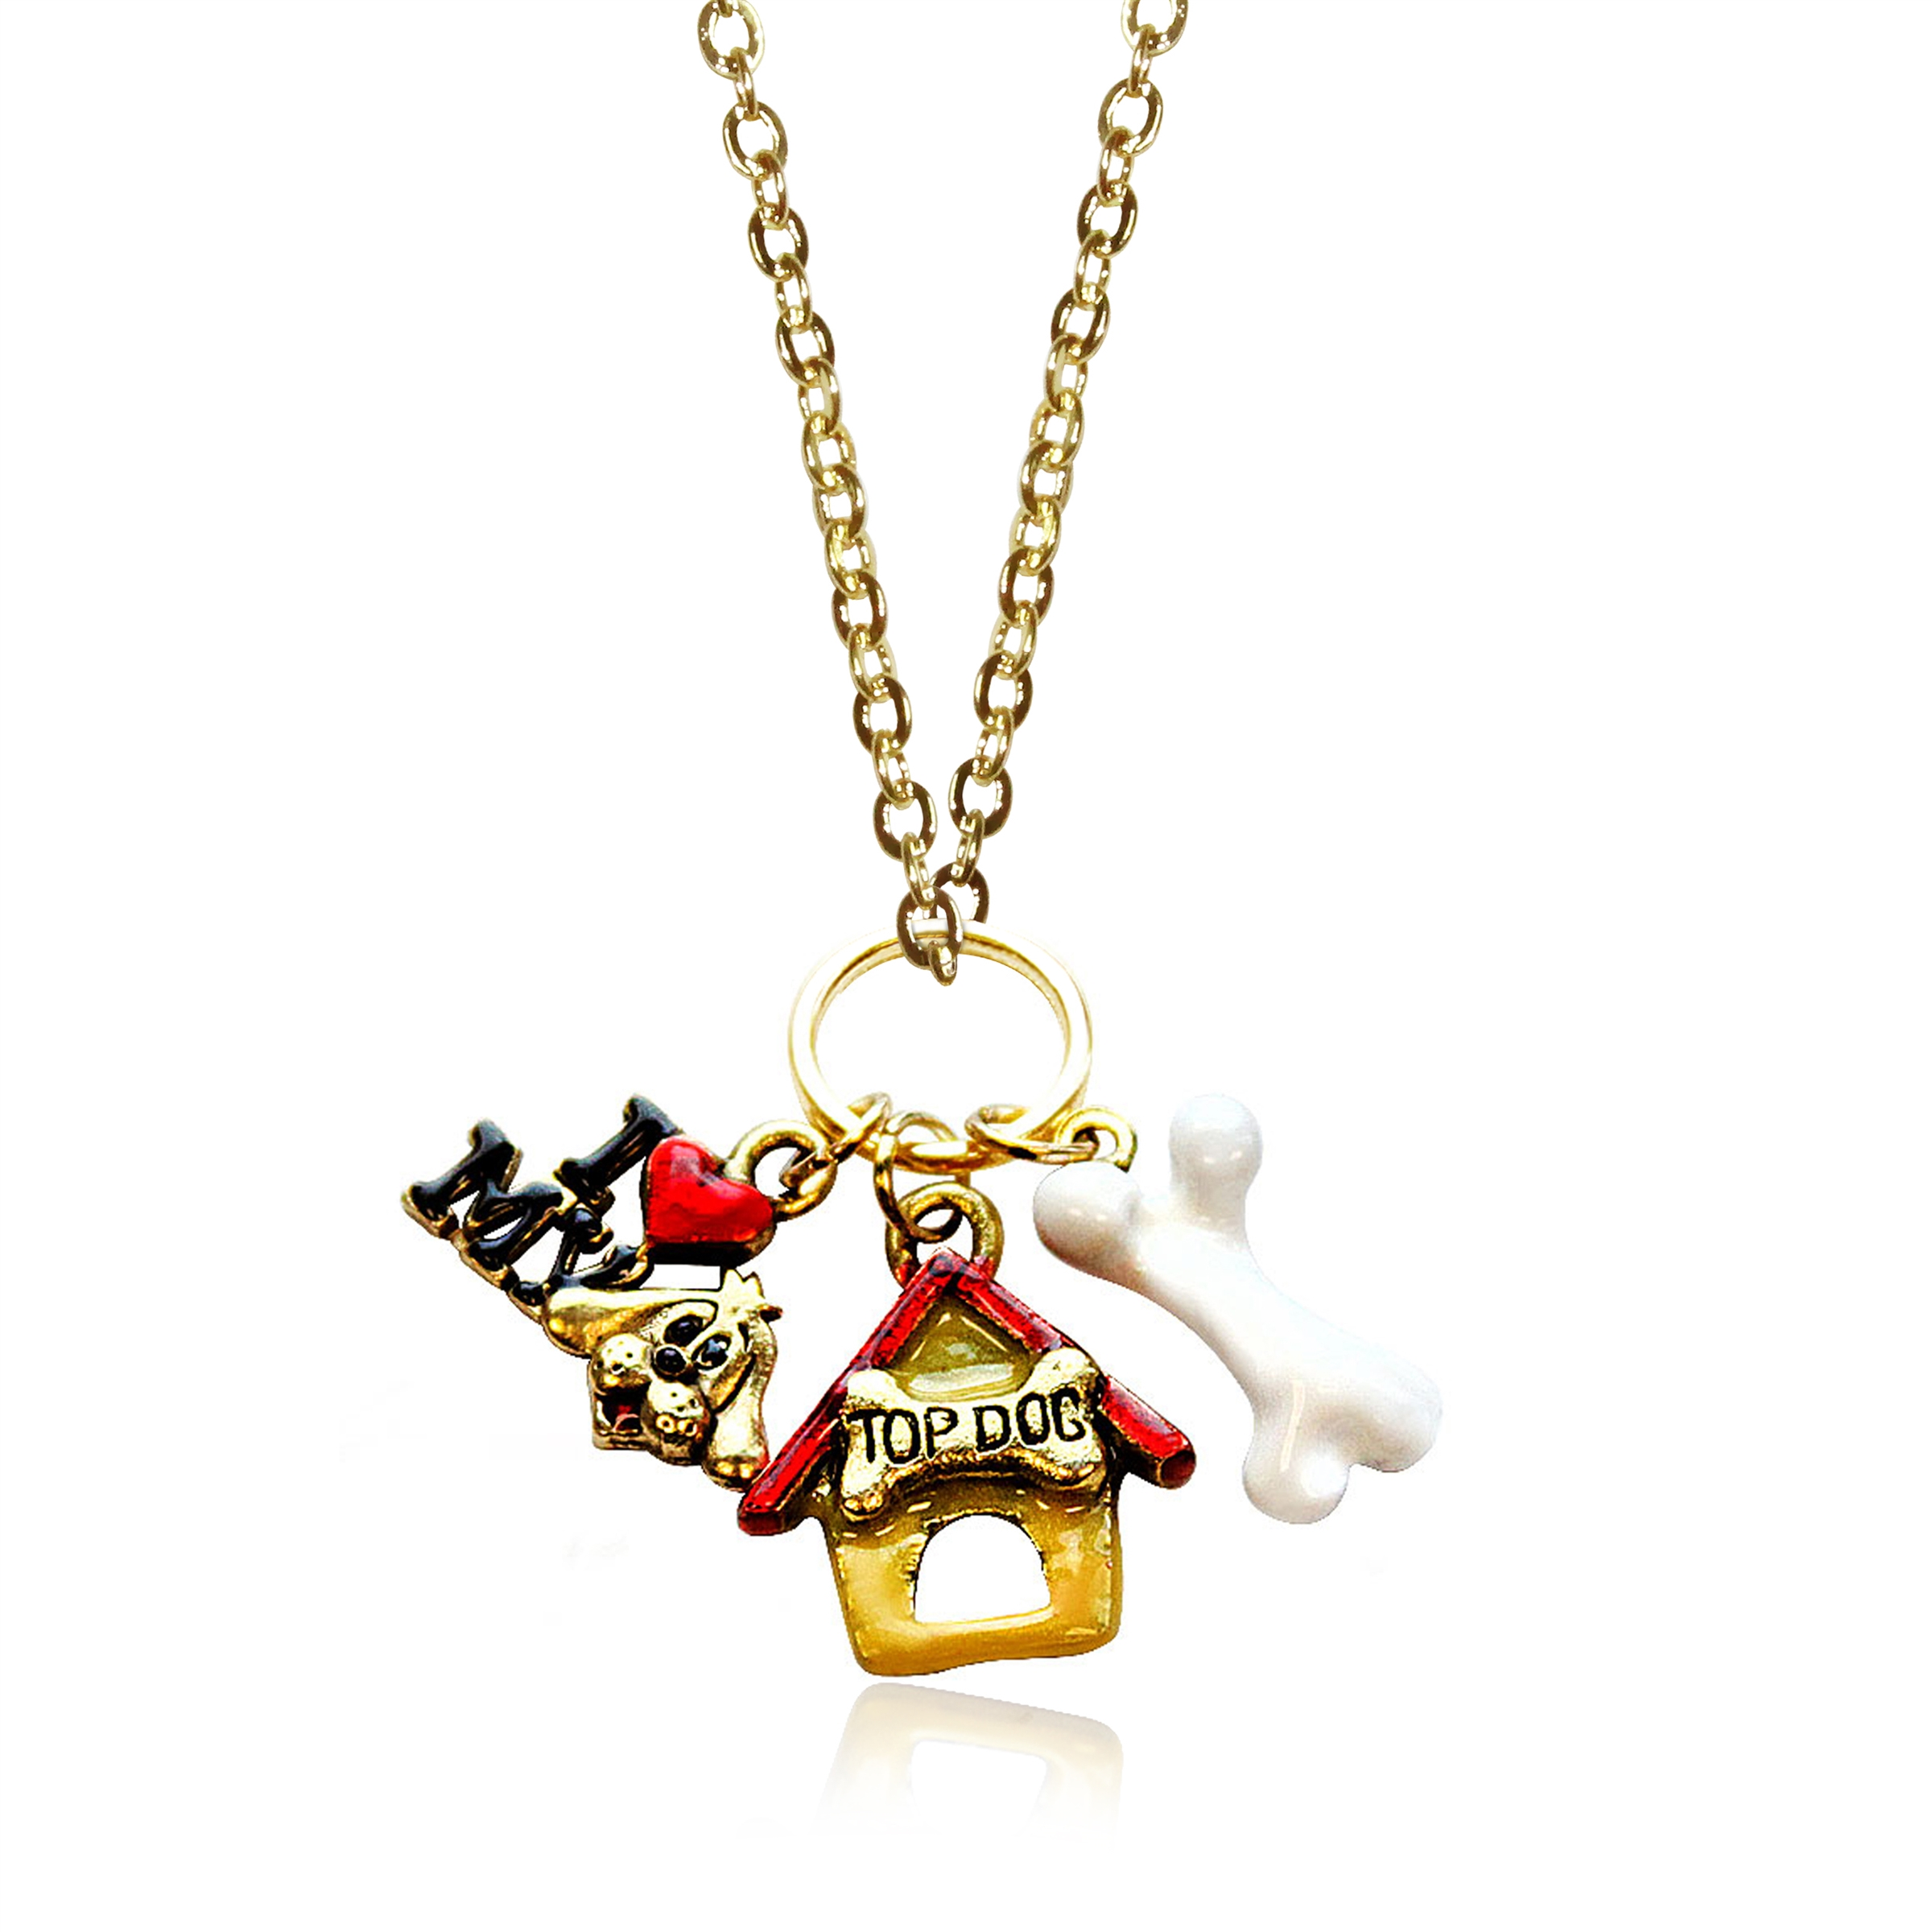 Dog Lover Charm Necklace in Gold